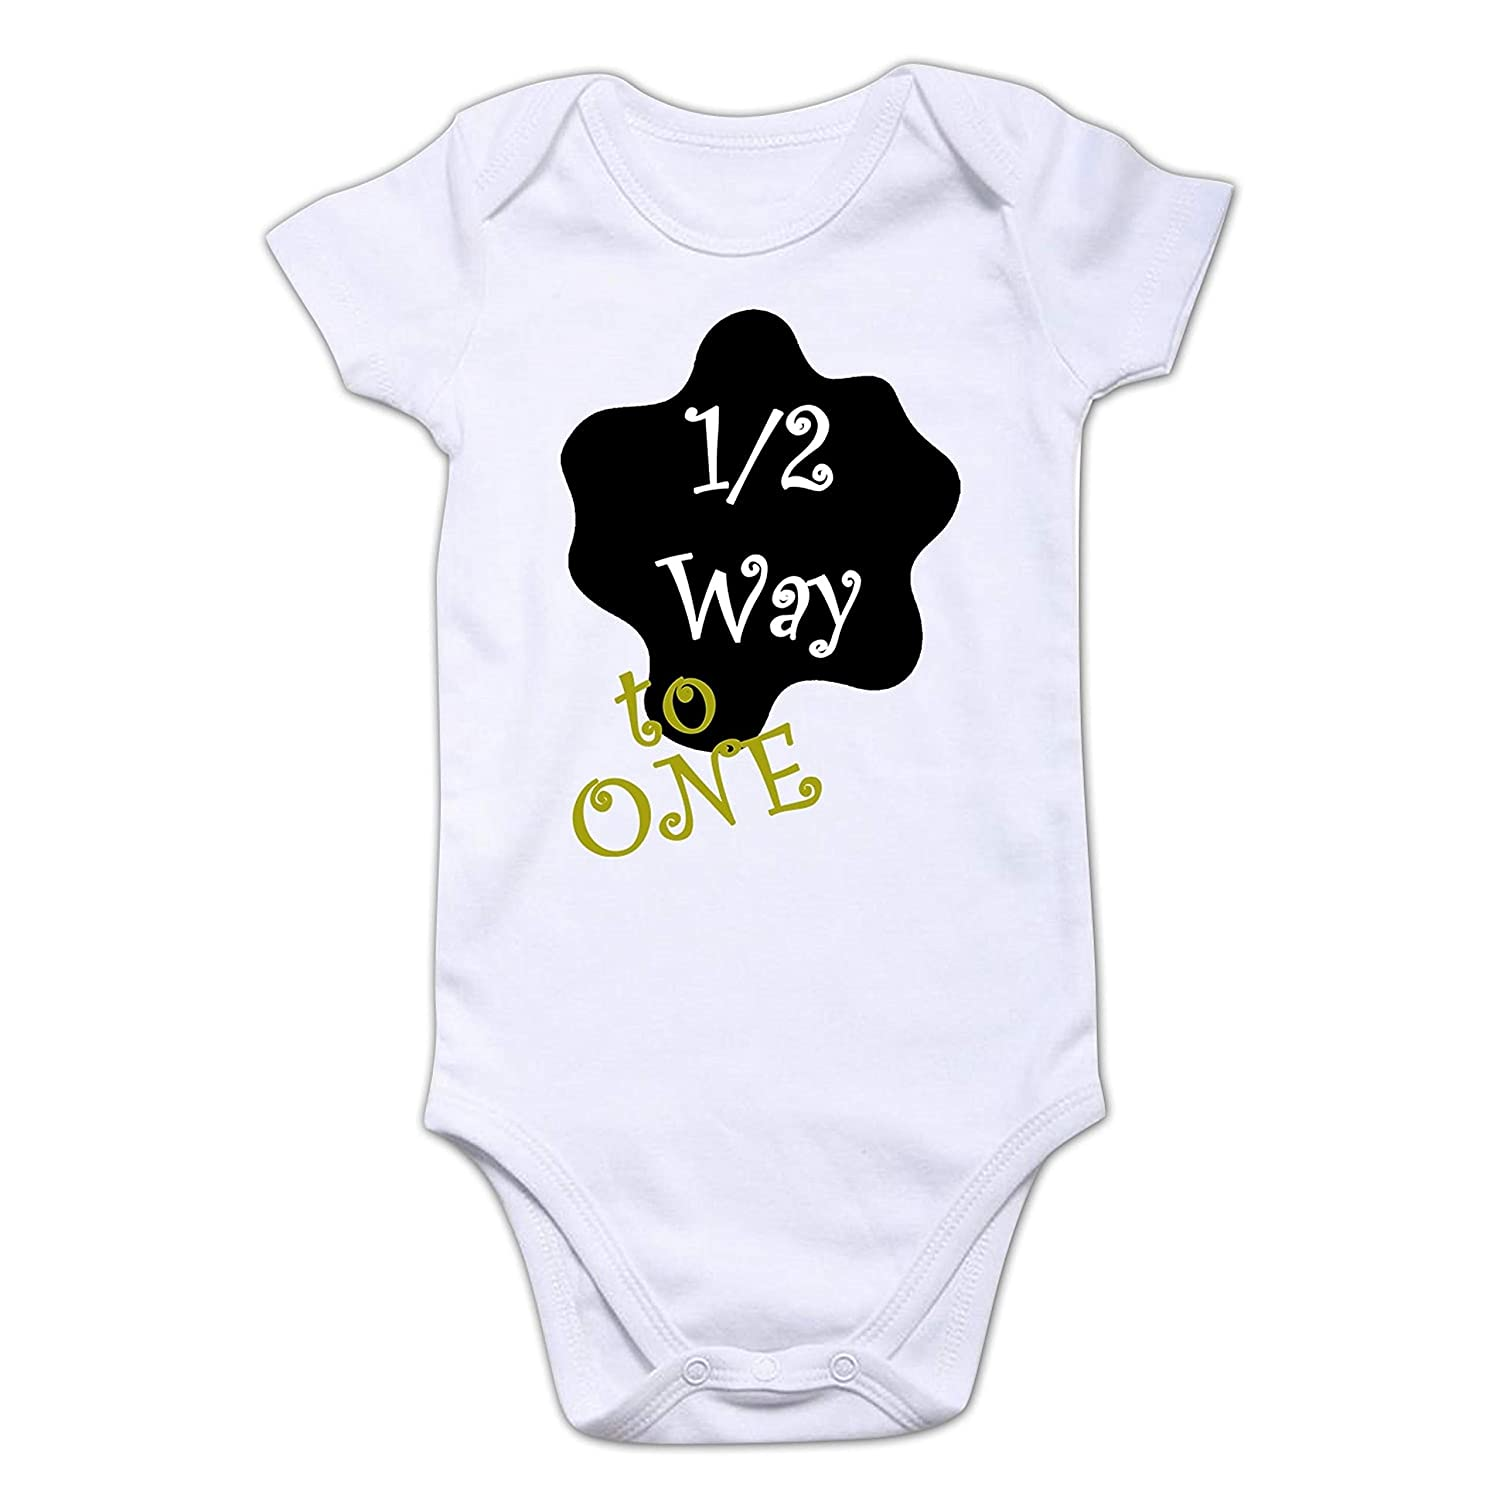 Funcart Half Way to one Baby Romper Size 5x5 Inches(5-5 Months